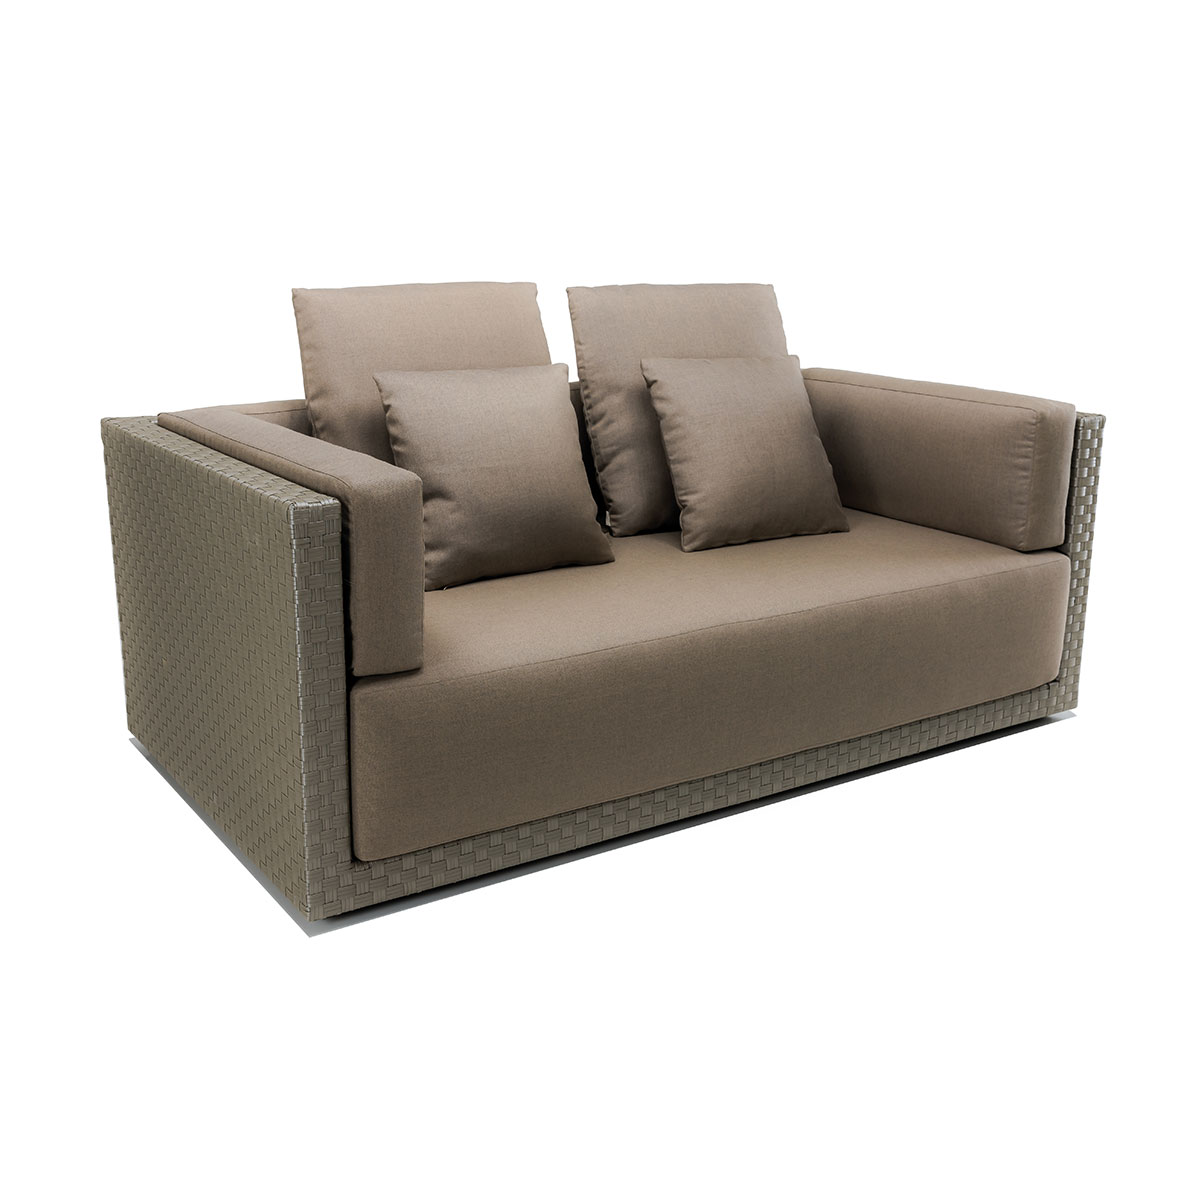 2 seated sofa Zoe Braid